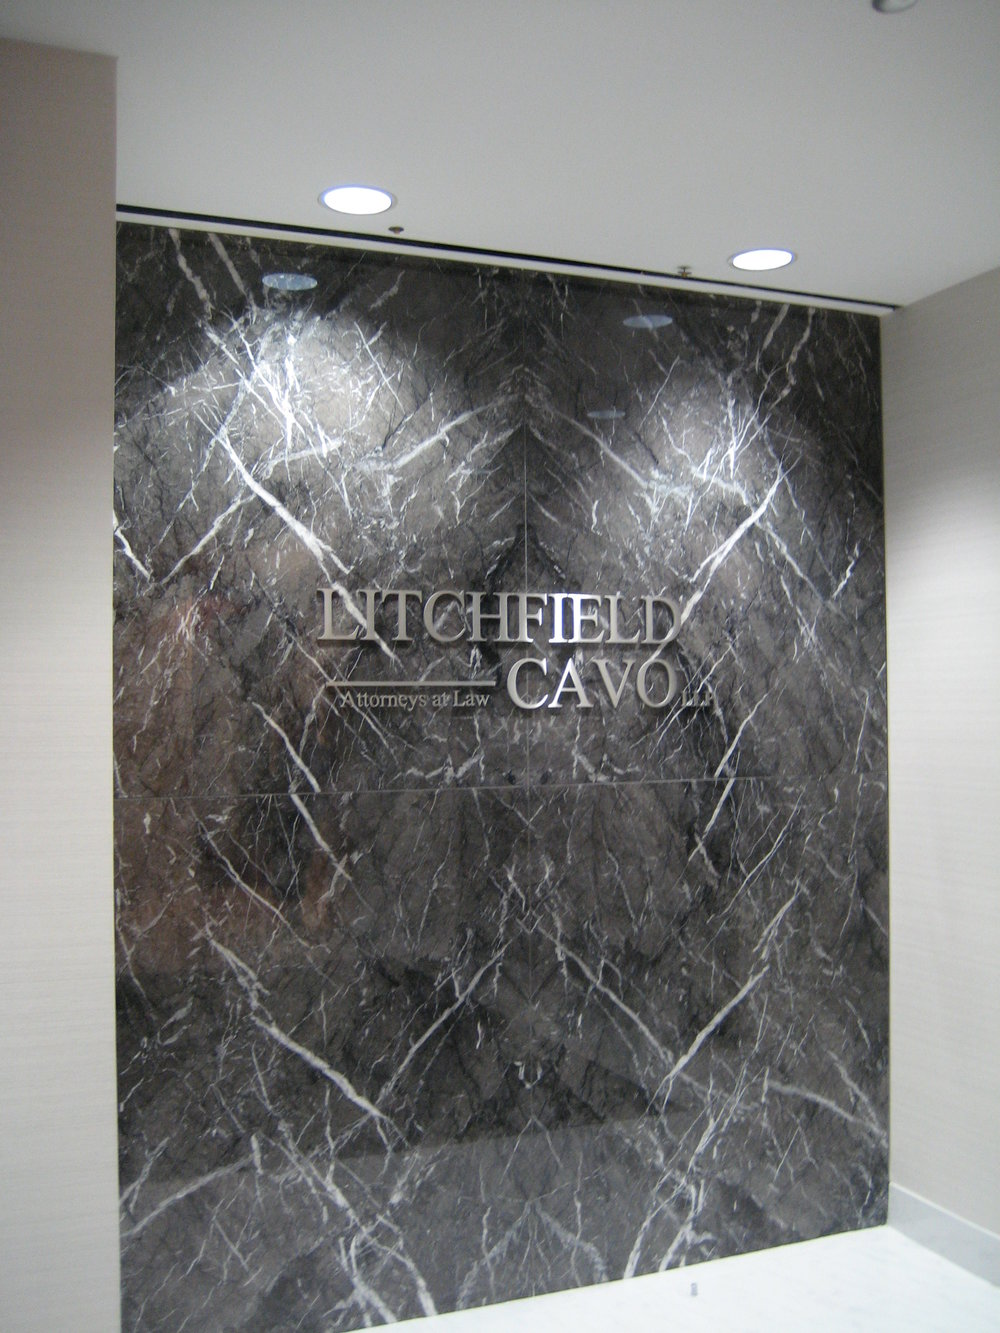 Litchfield Cavo 01.04 - Entry Signage.jpg